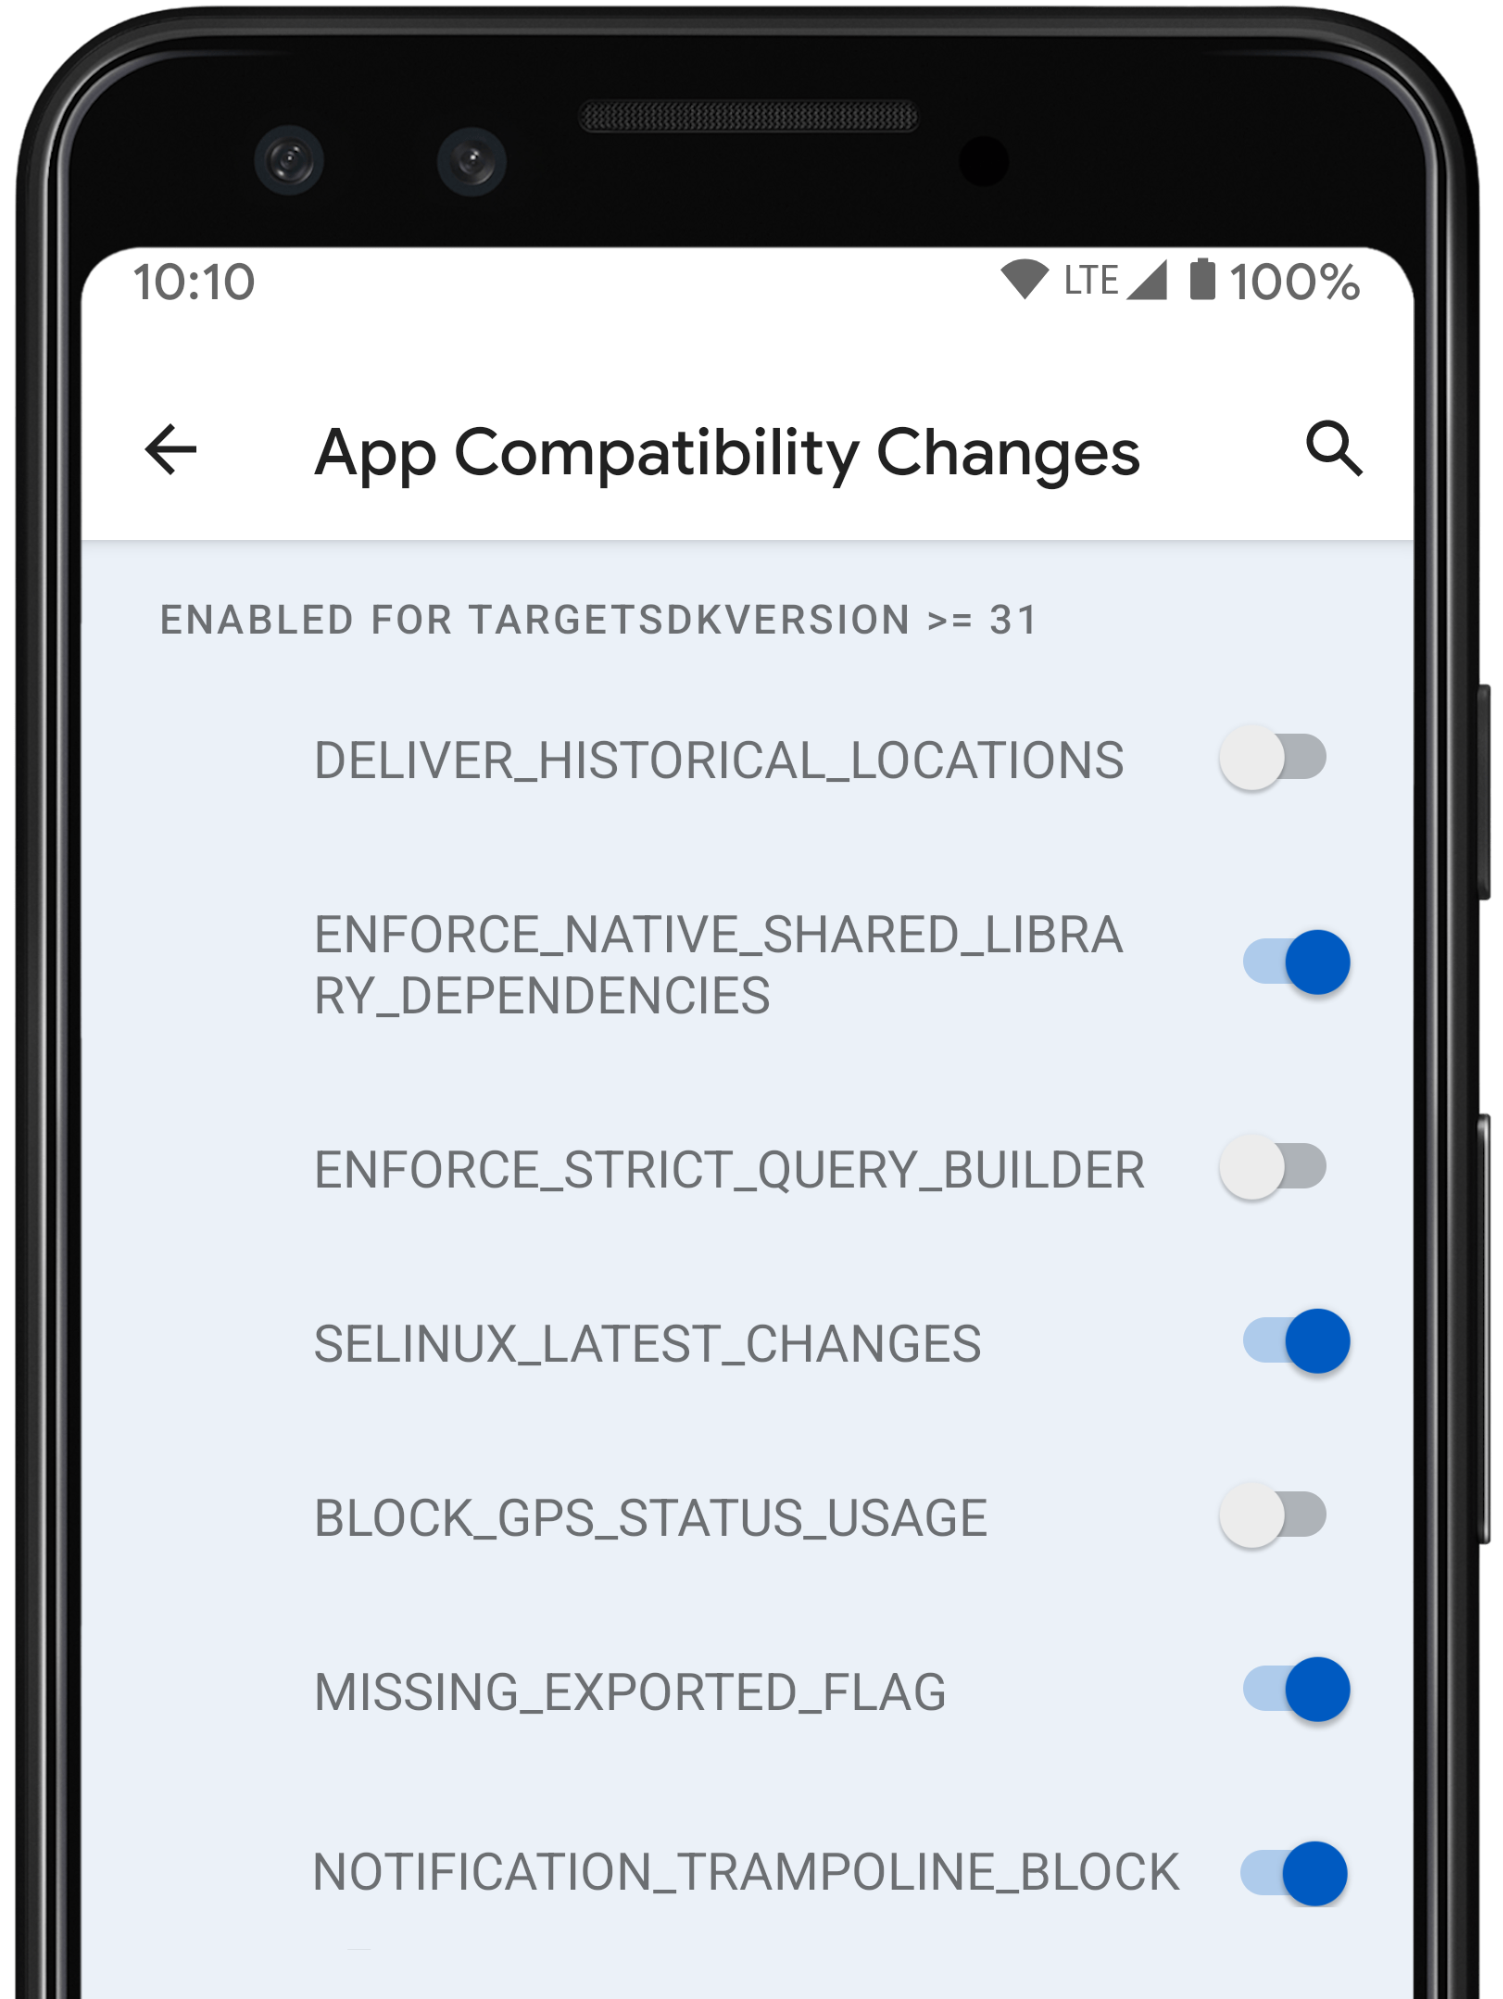 mobile display of App Compatibility Changes with toggles